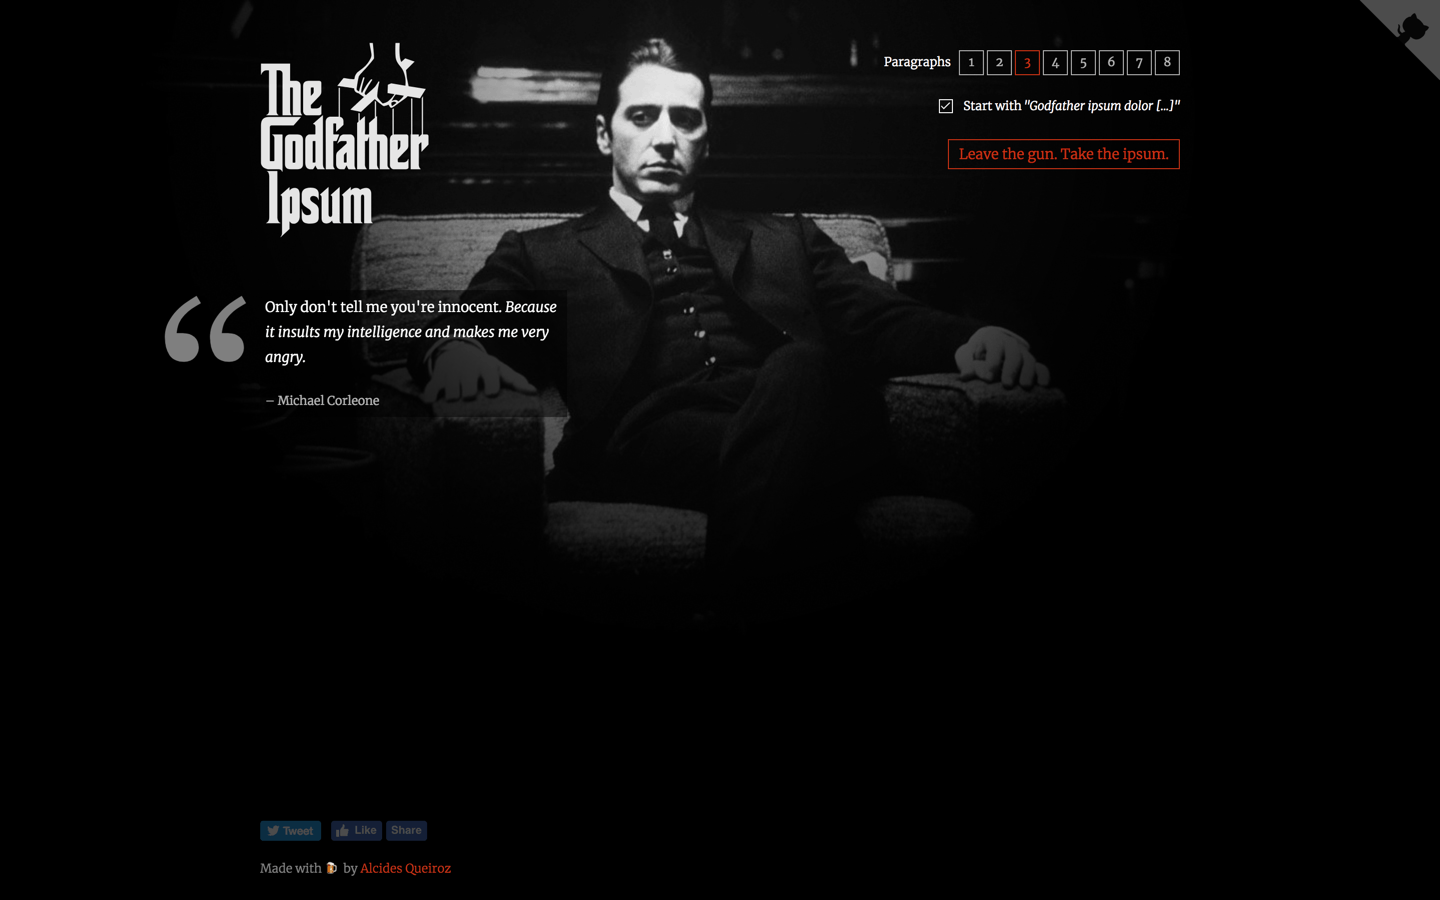 godfather ipsum